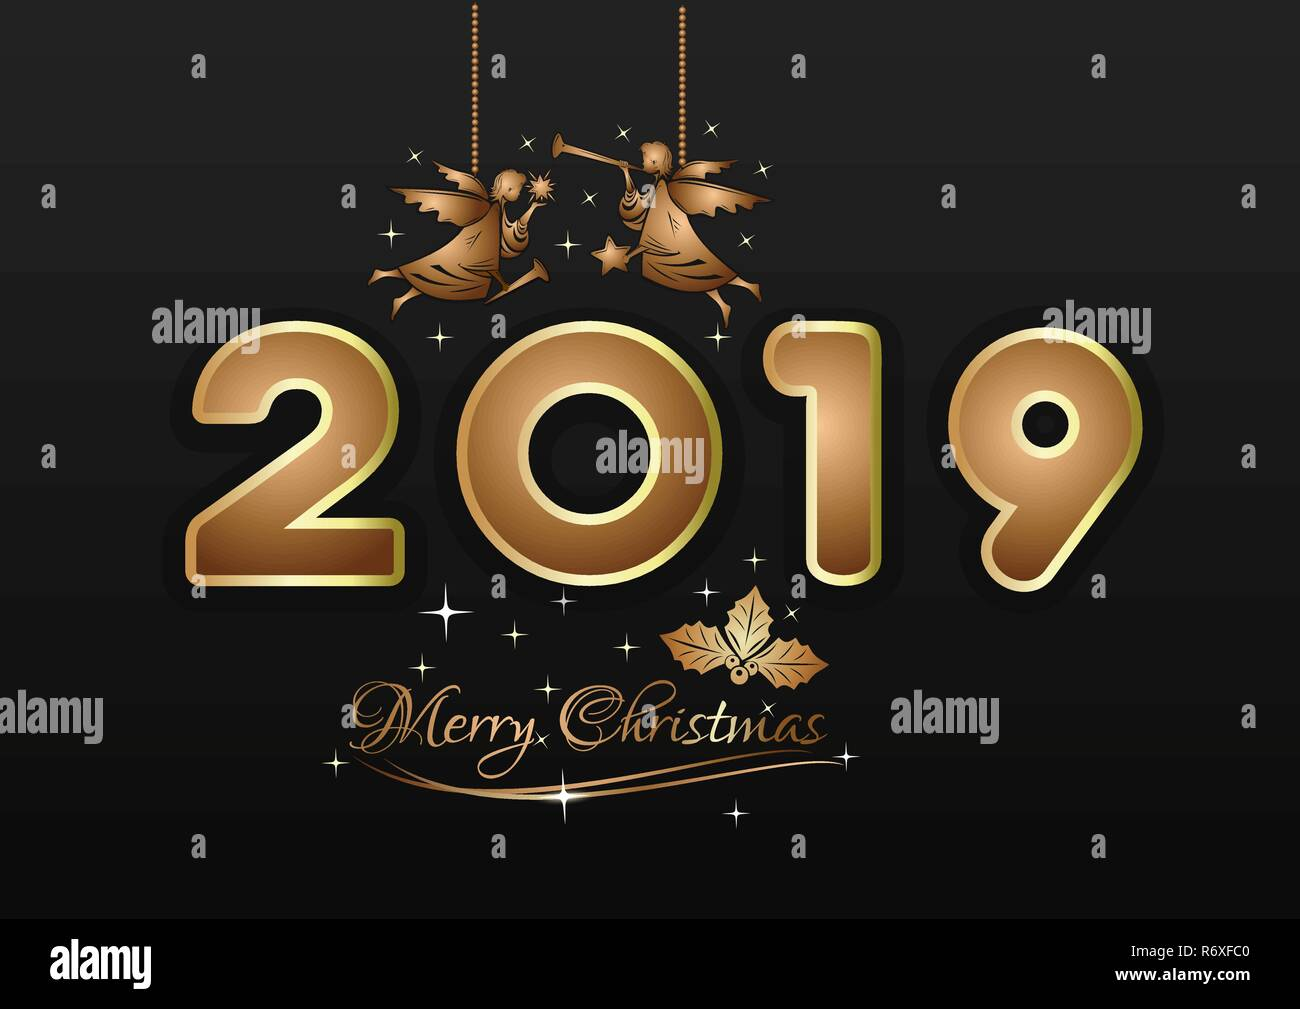 Angels Christmas Background.Merry Christmas 2019 New Years Design Gold Christmas